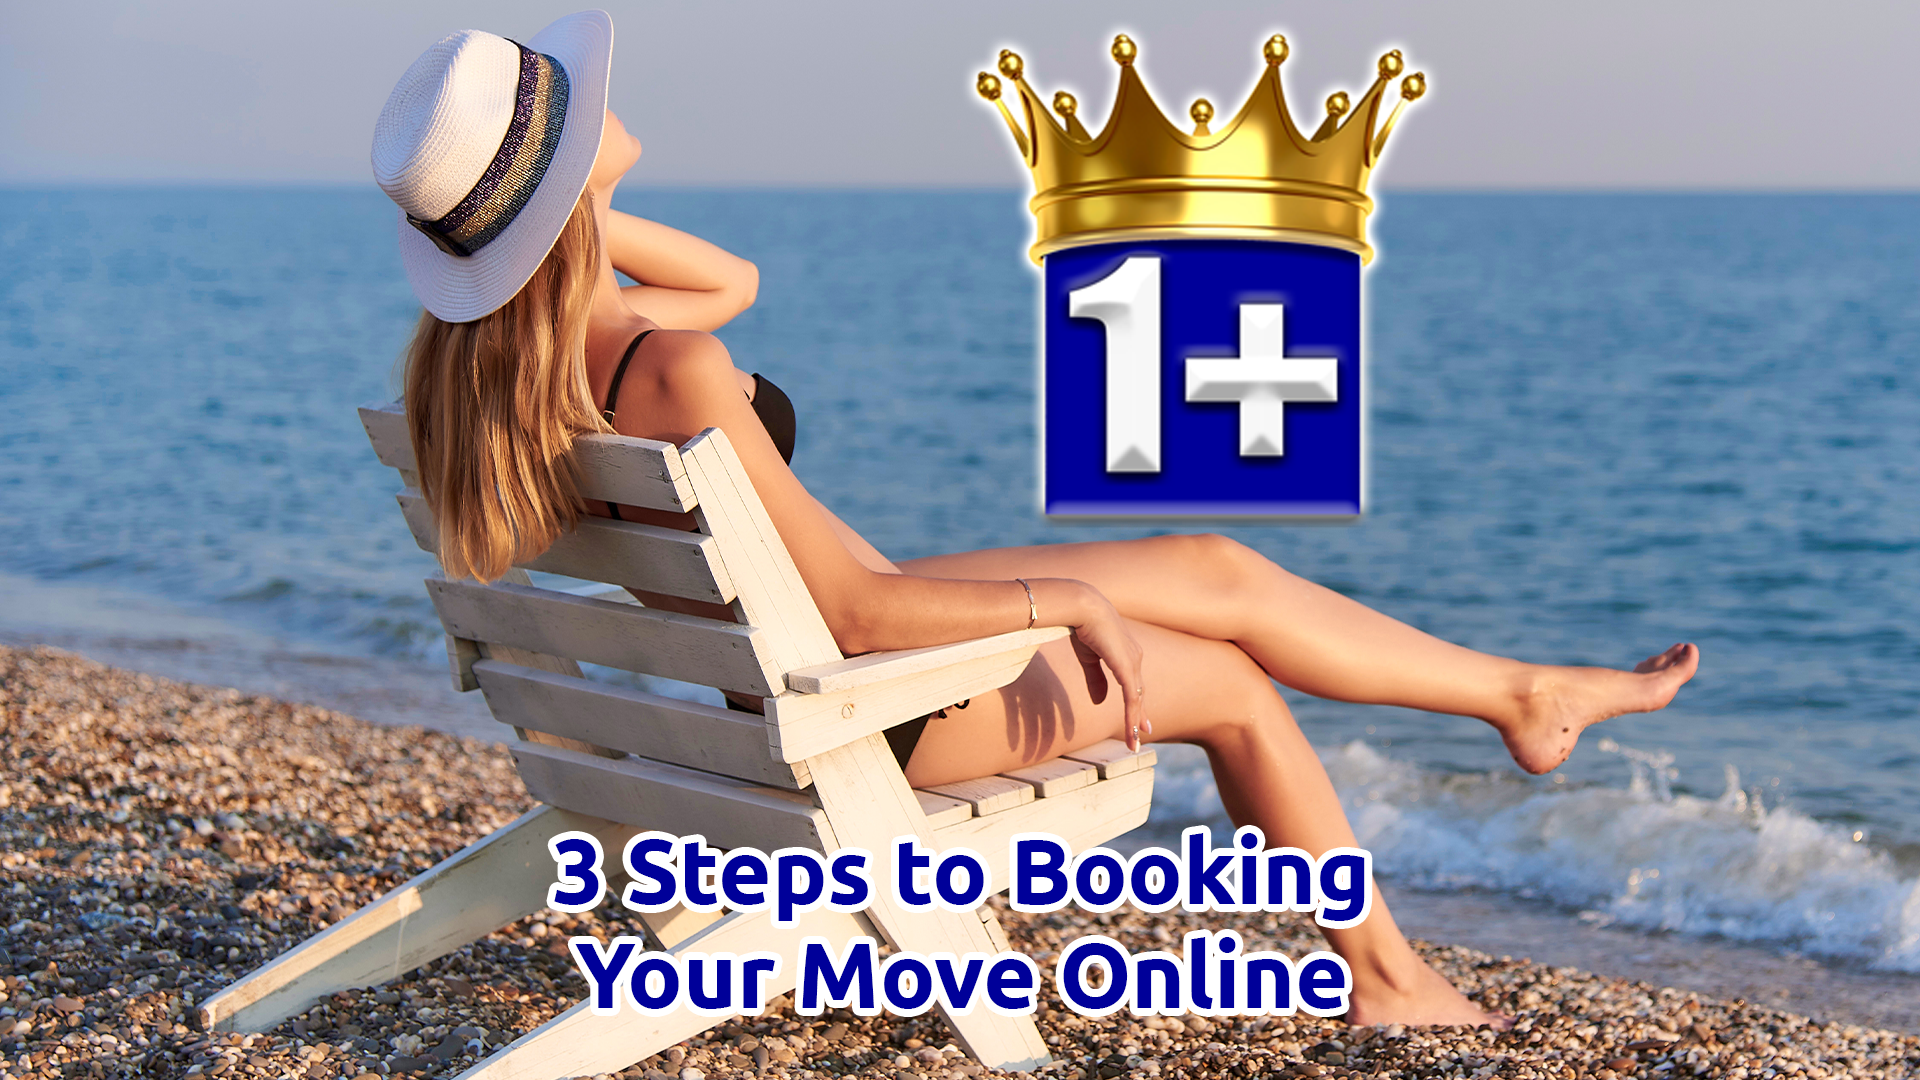 3 Steps To Booking Your Move Online Relaxing